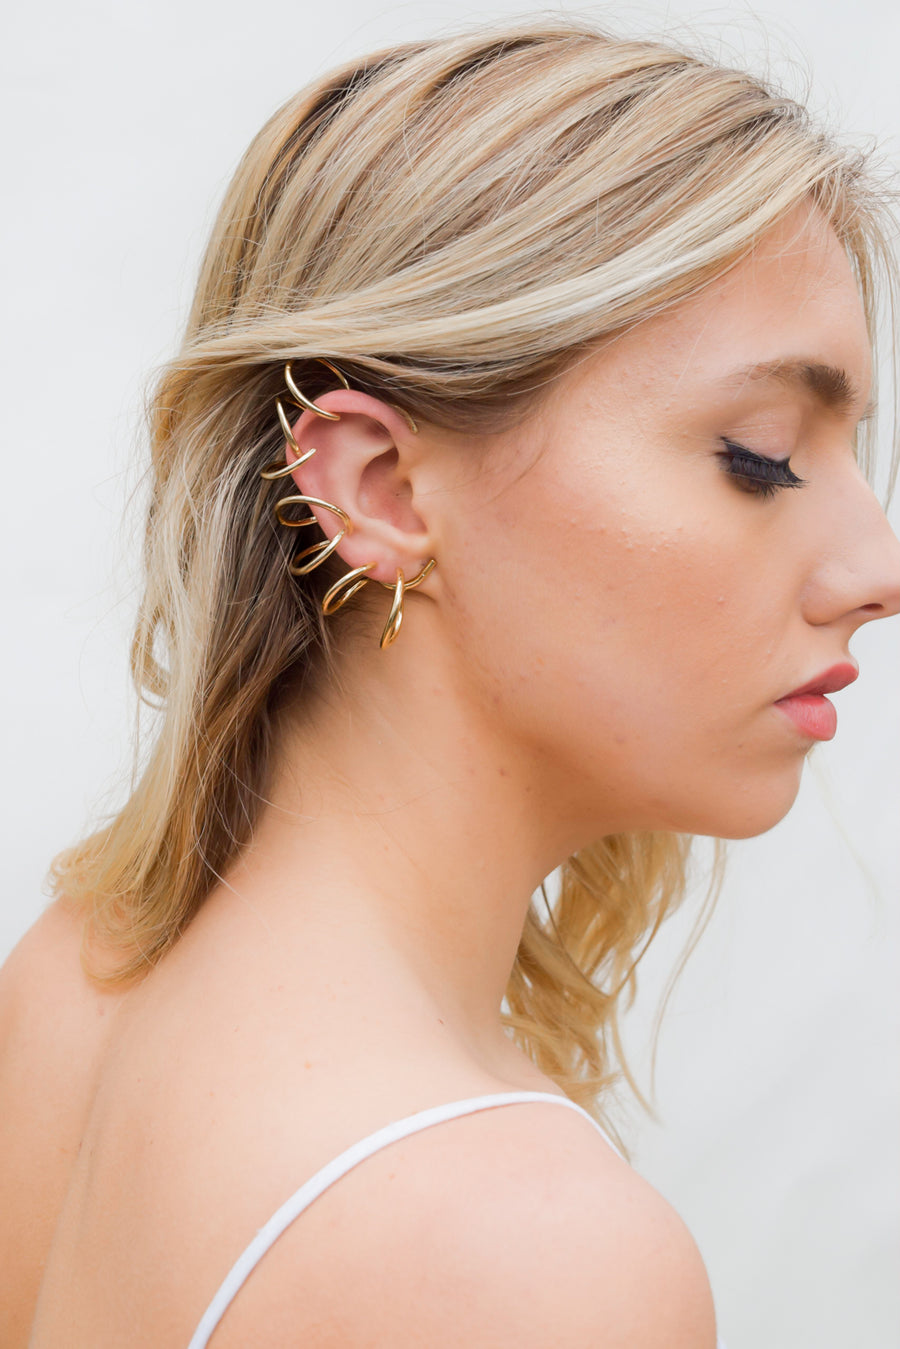 Rebel ear cuff on model. 14k yellow gold one-sided ear cuff with multiple large coil design. No piercing required. Handmade by local jewelry designer, Nina Berenato, in Austin, Texas.